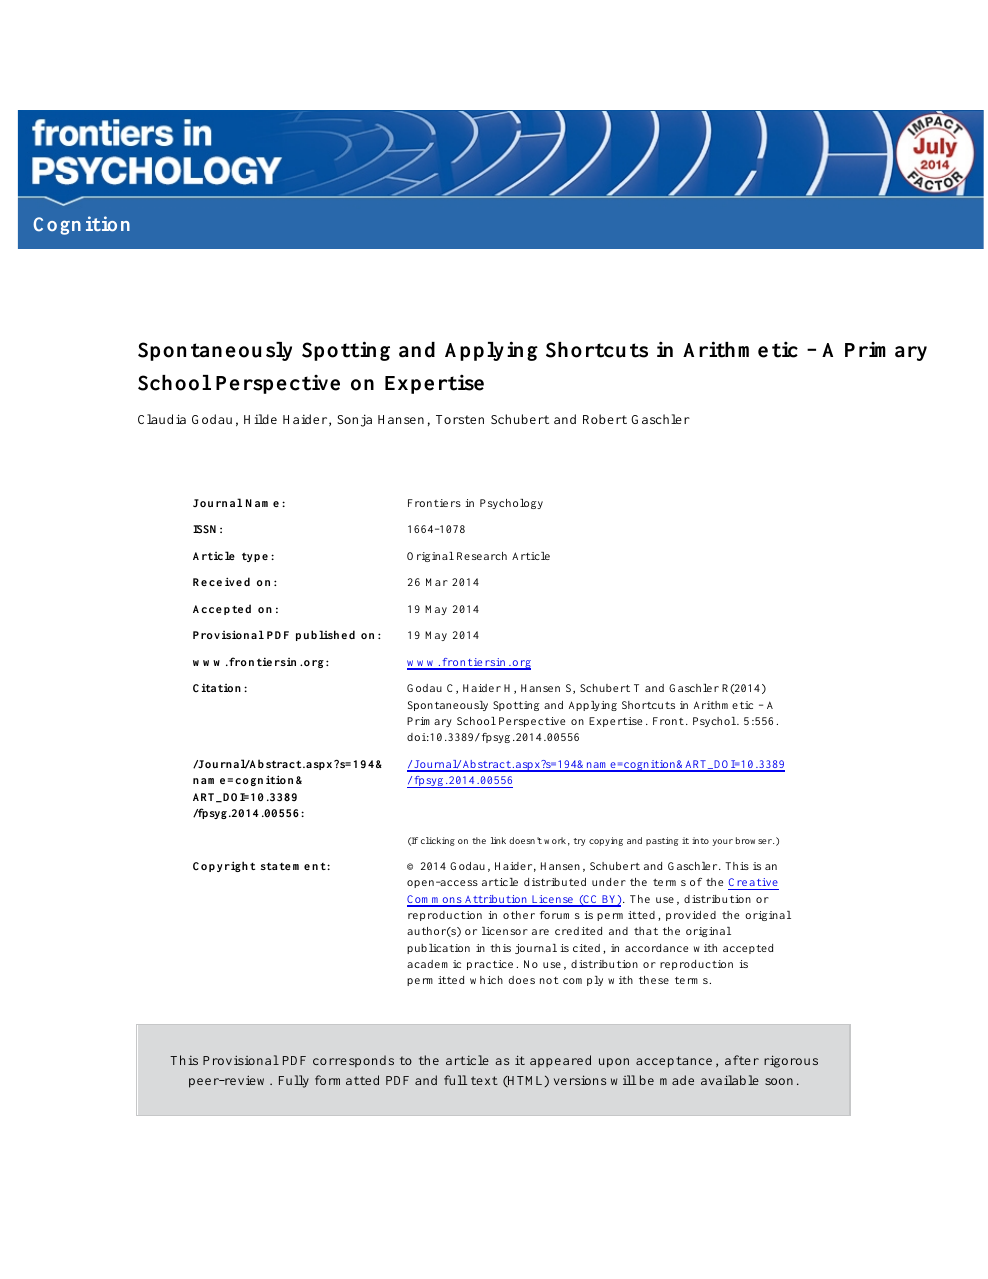 Spontaneously spotting and applying shortcuts in arithmetic—a